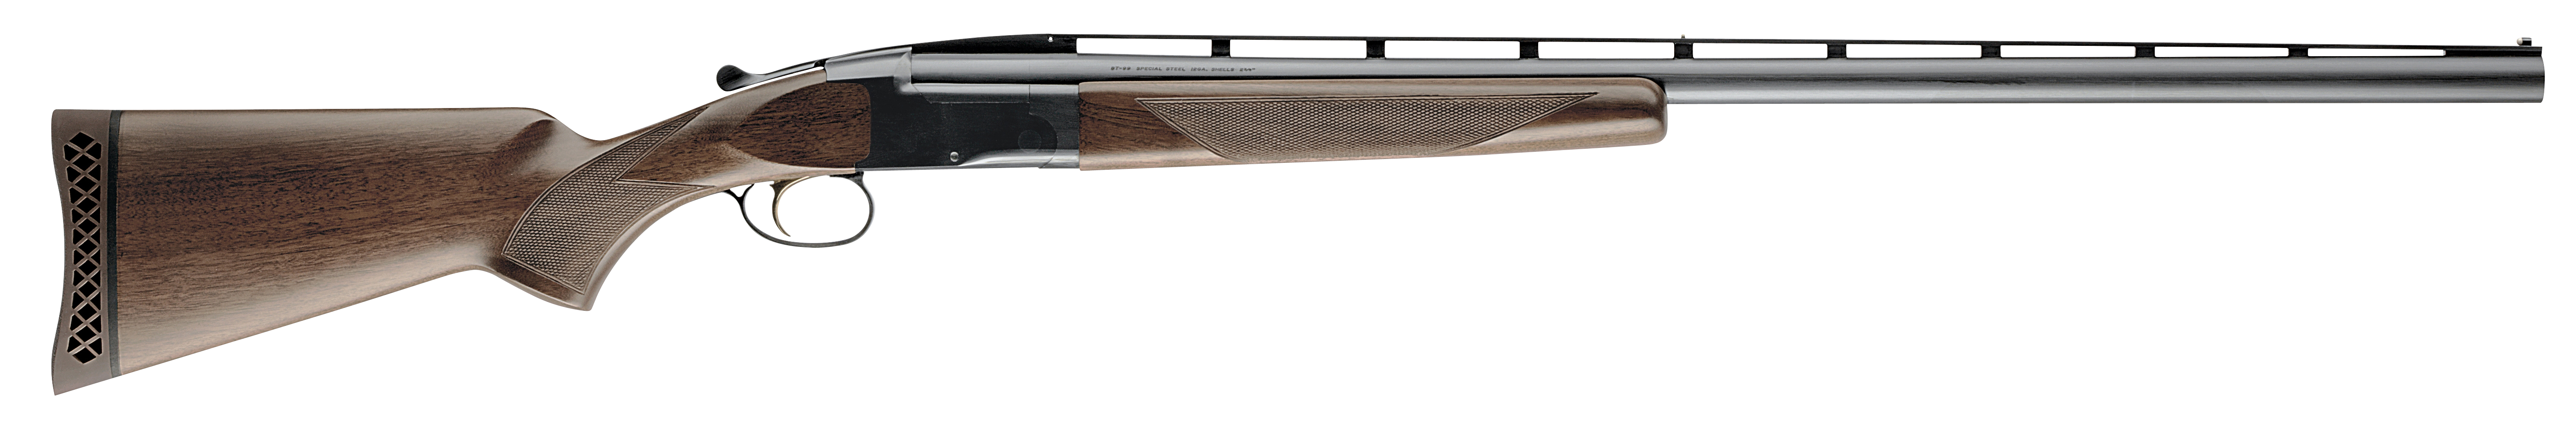 Browning BT-99 Micro Break Open Shotgun 2.75'' 12 Gauge 30'' Steel - Grade I Walnut